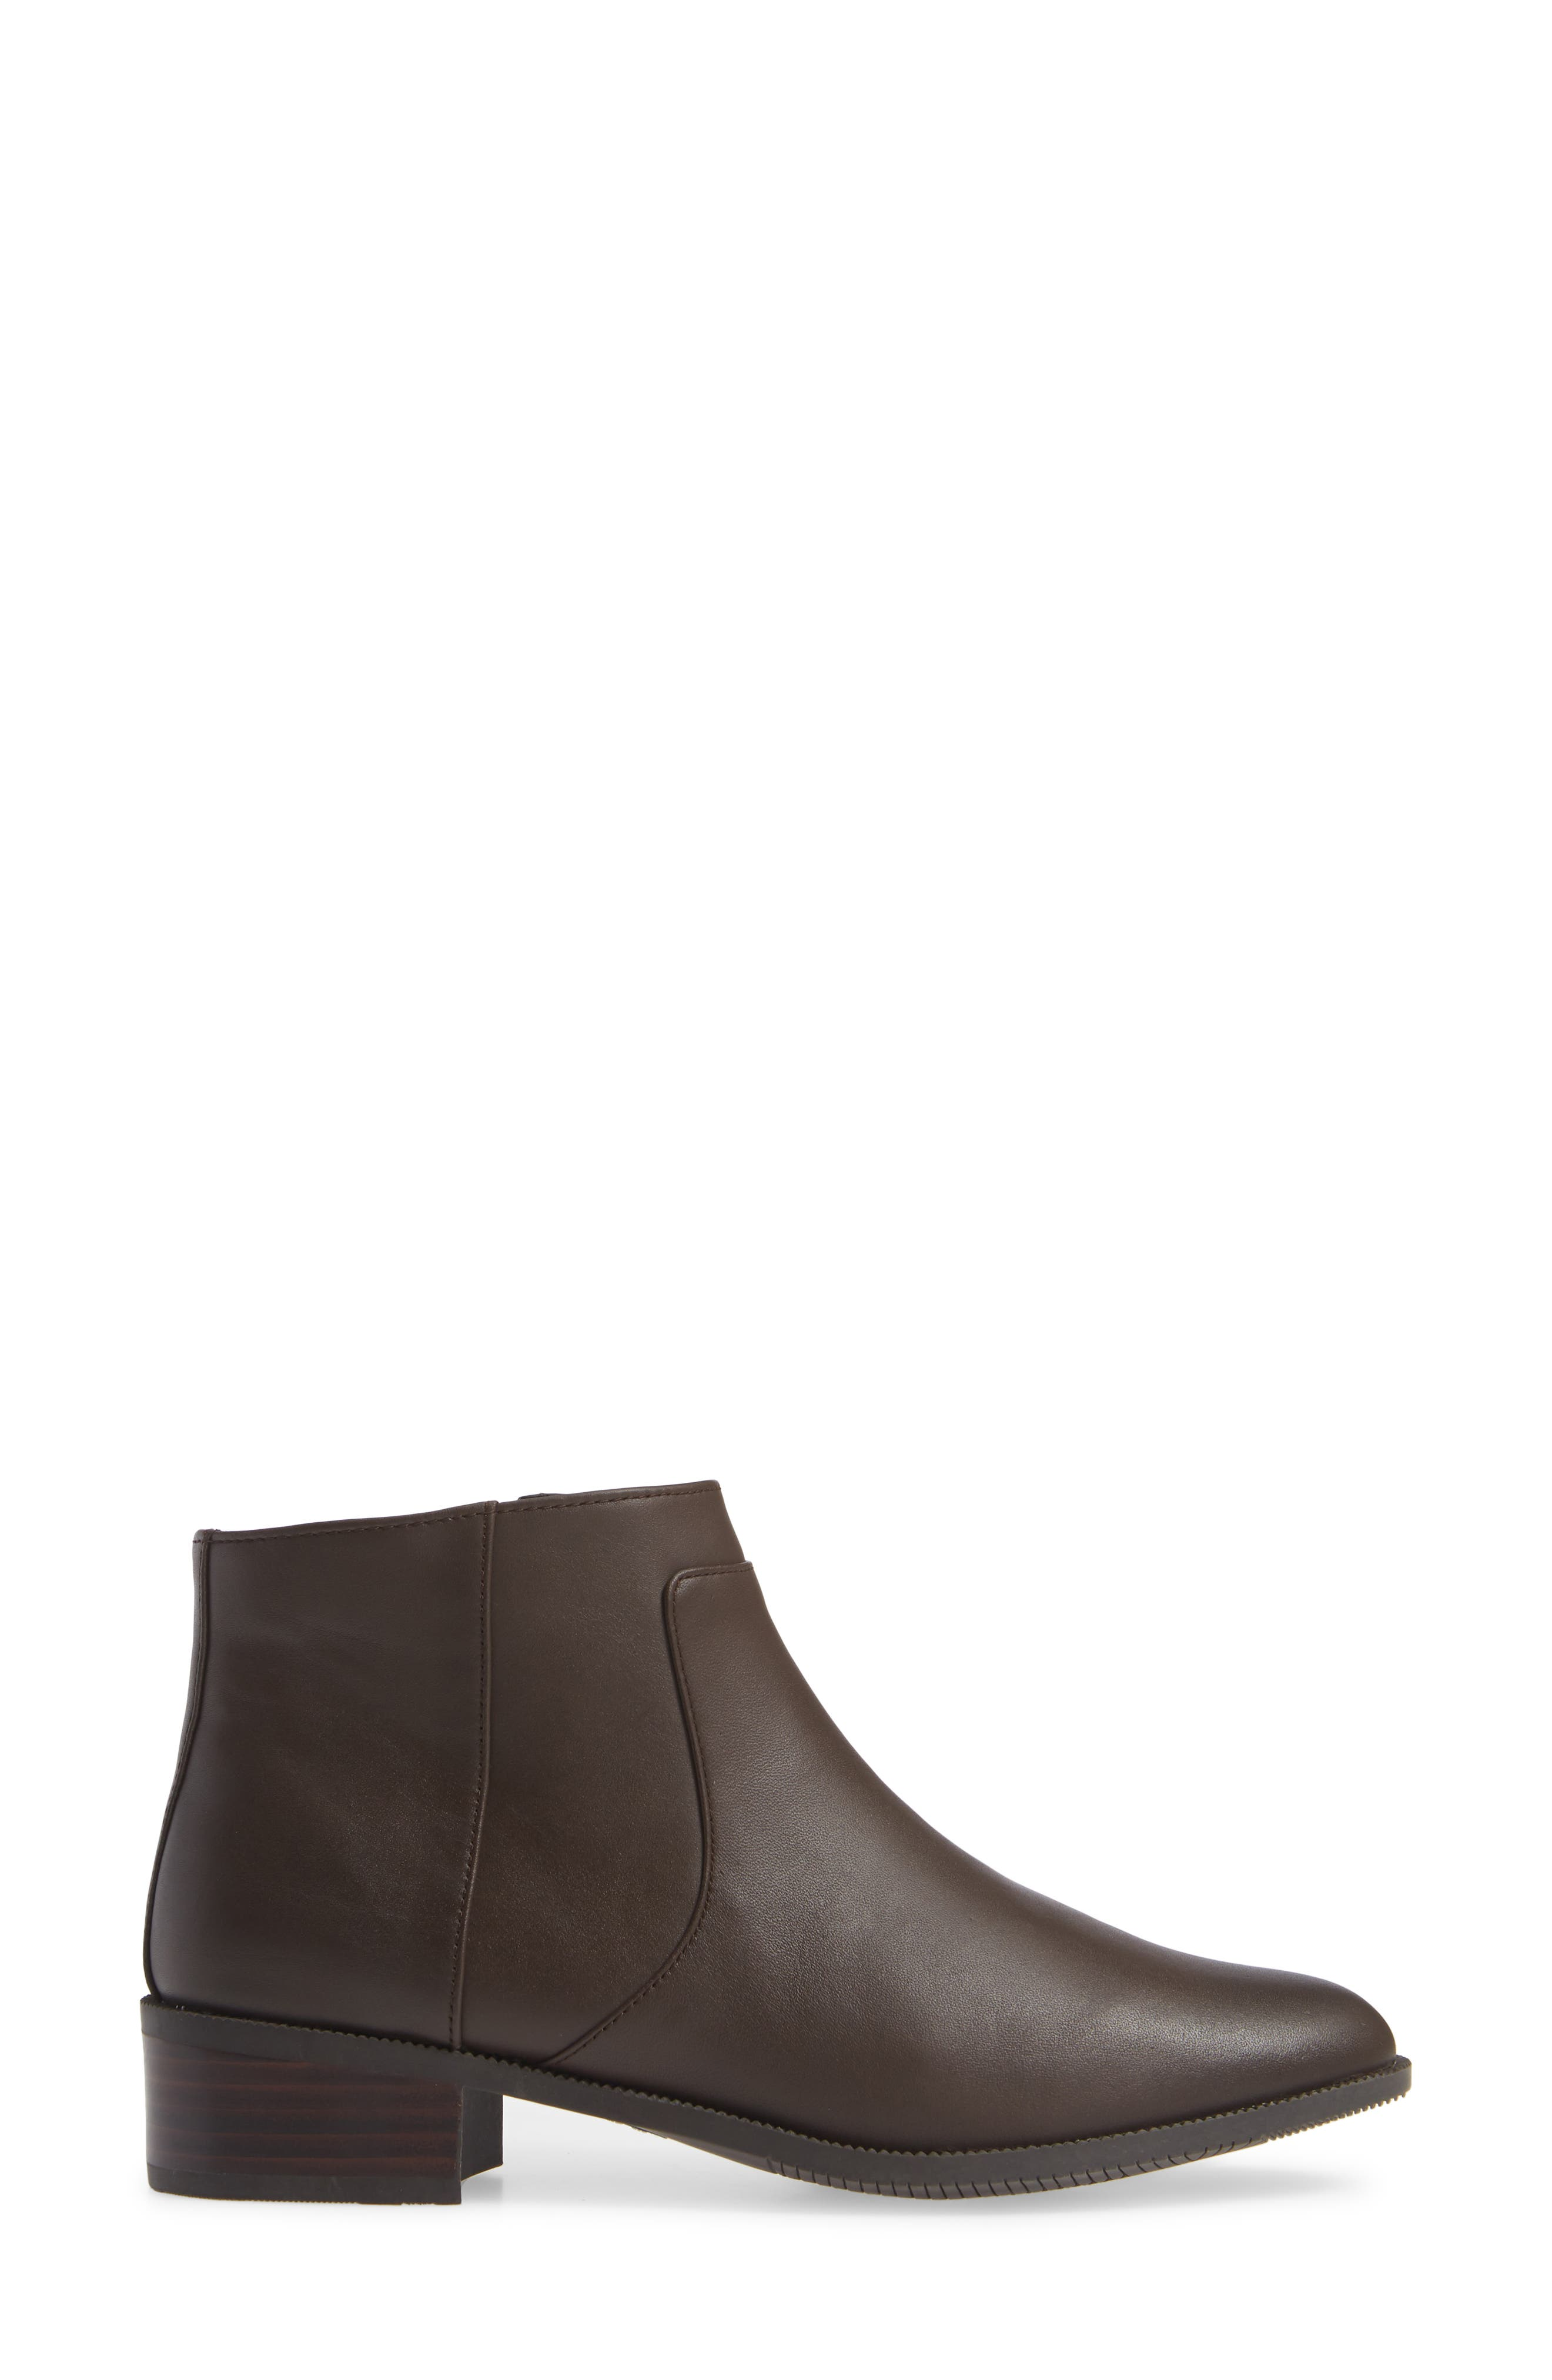 Benette Water Resistant Bootie,                             Alternate thumbnail 3, color,                             CHOCOLATE LEATHER